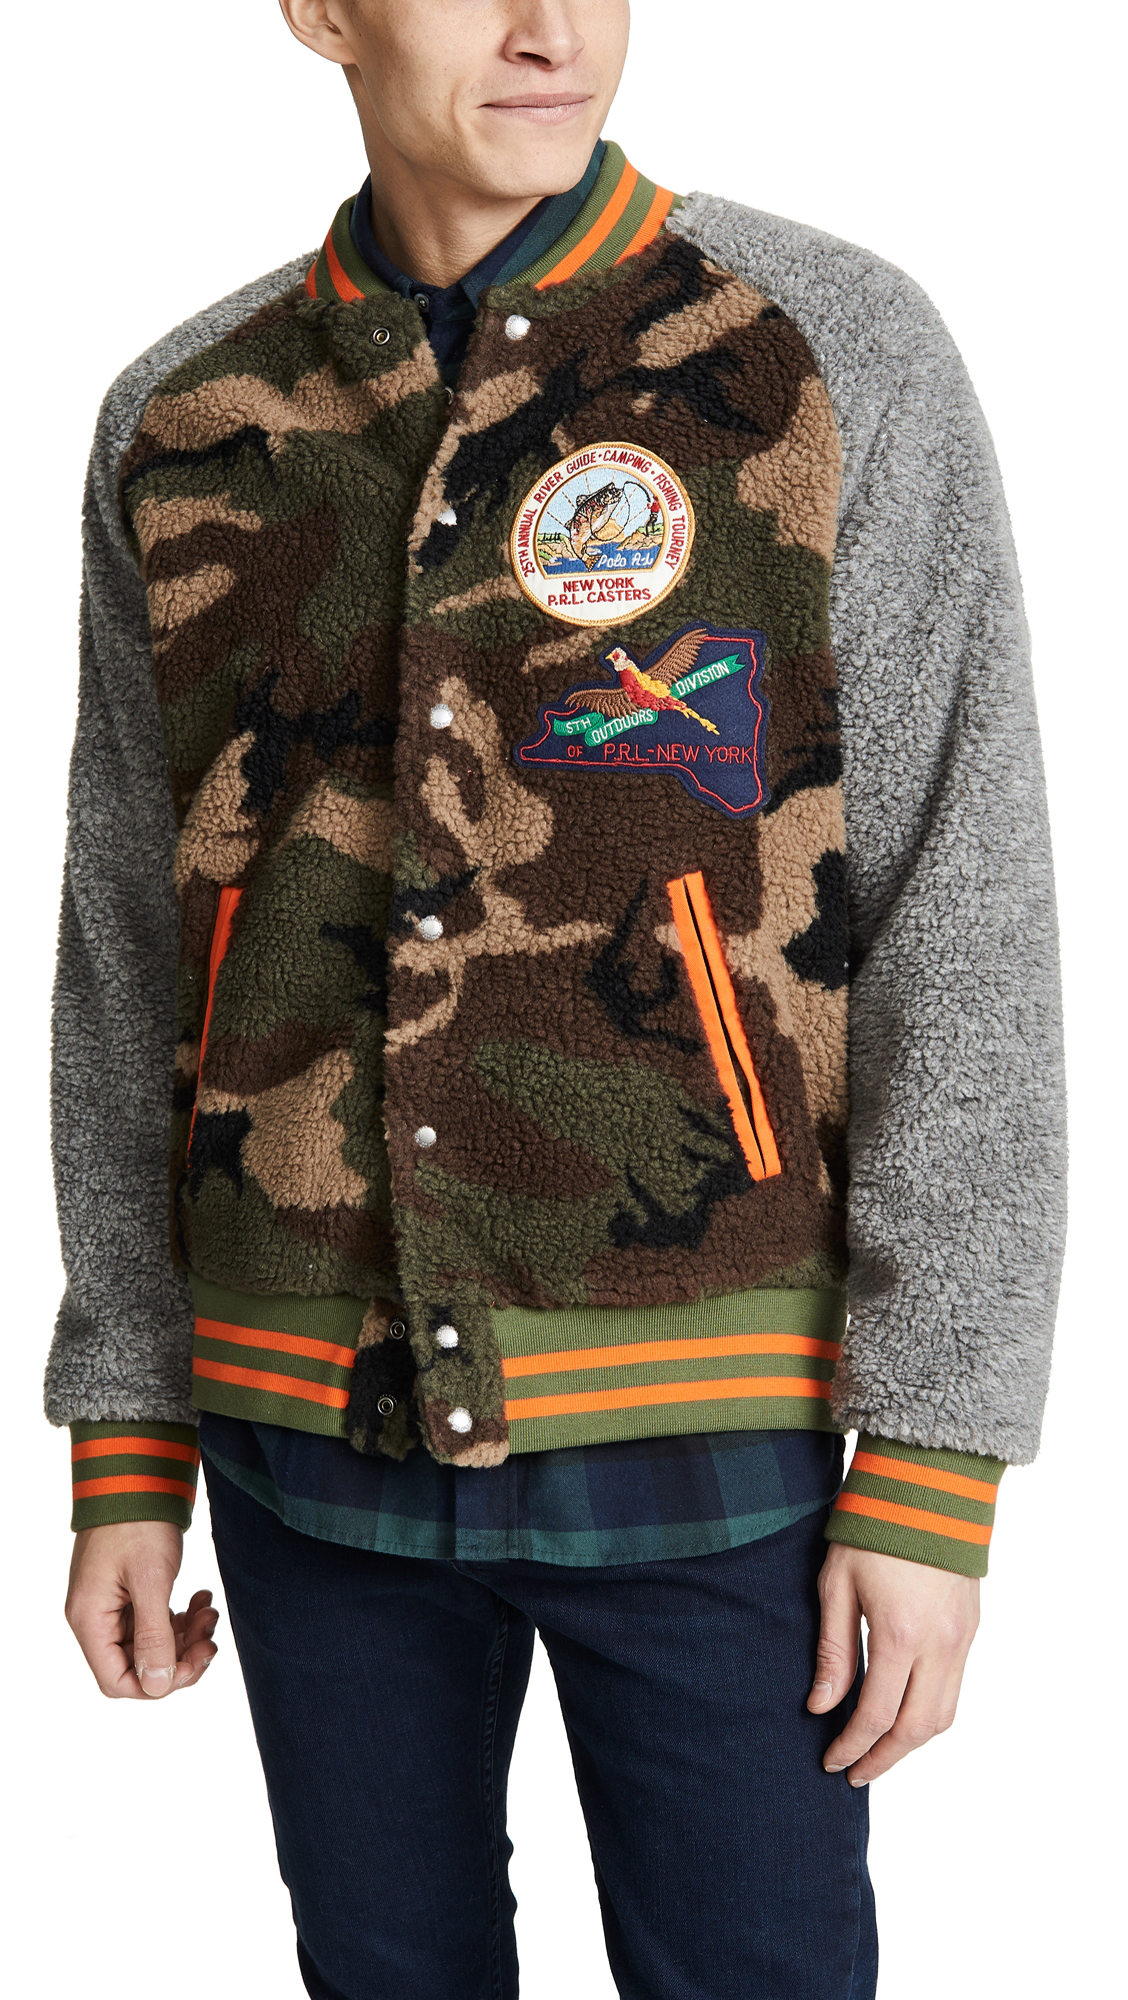 9eb13cce4 Polo Ralph Lauren Great Outdoors Sherpa Jacket In Camo Dark Vintage Heather